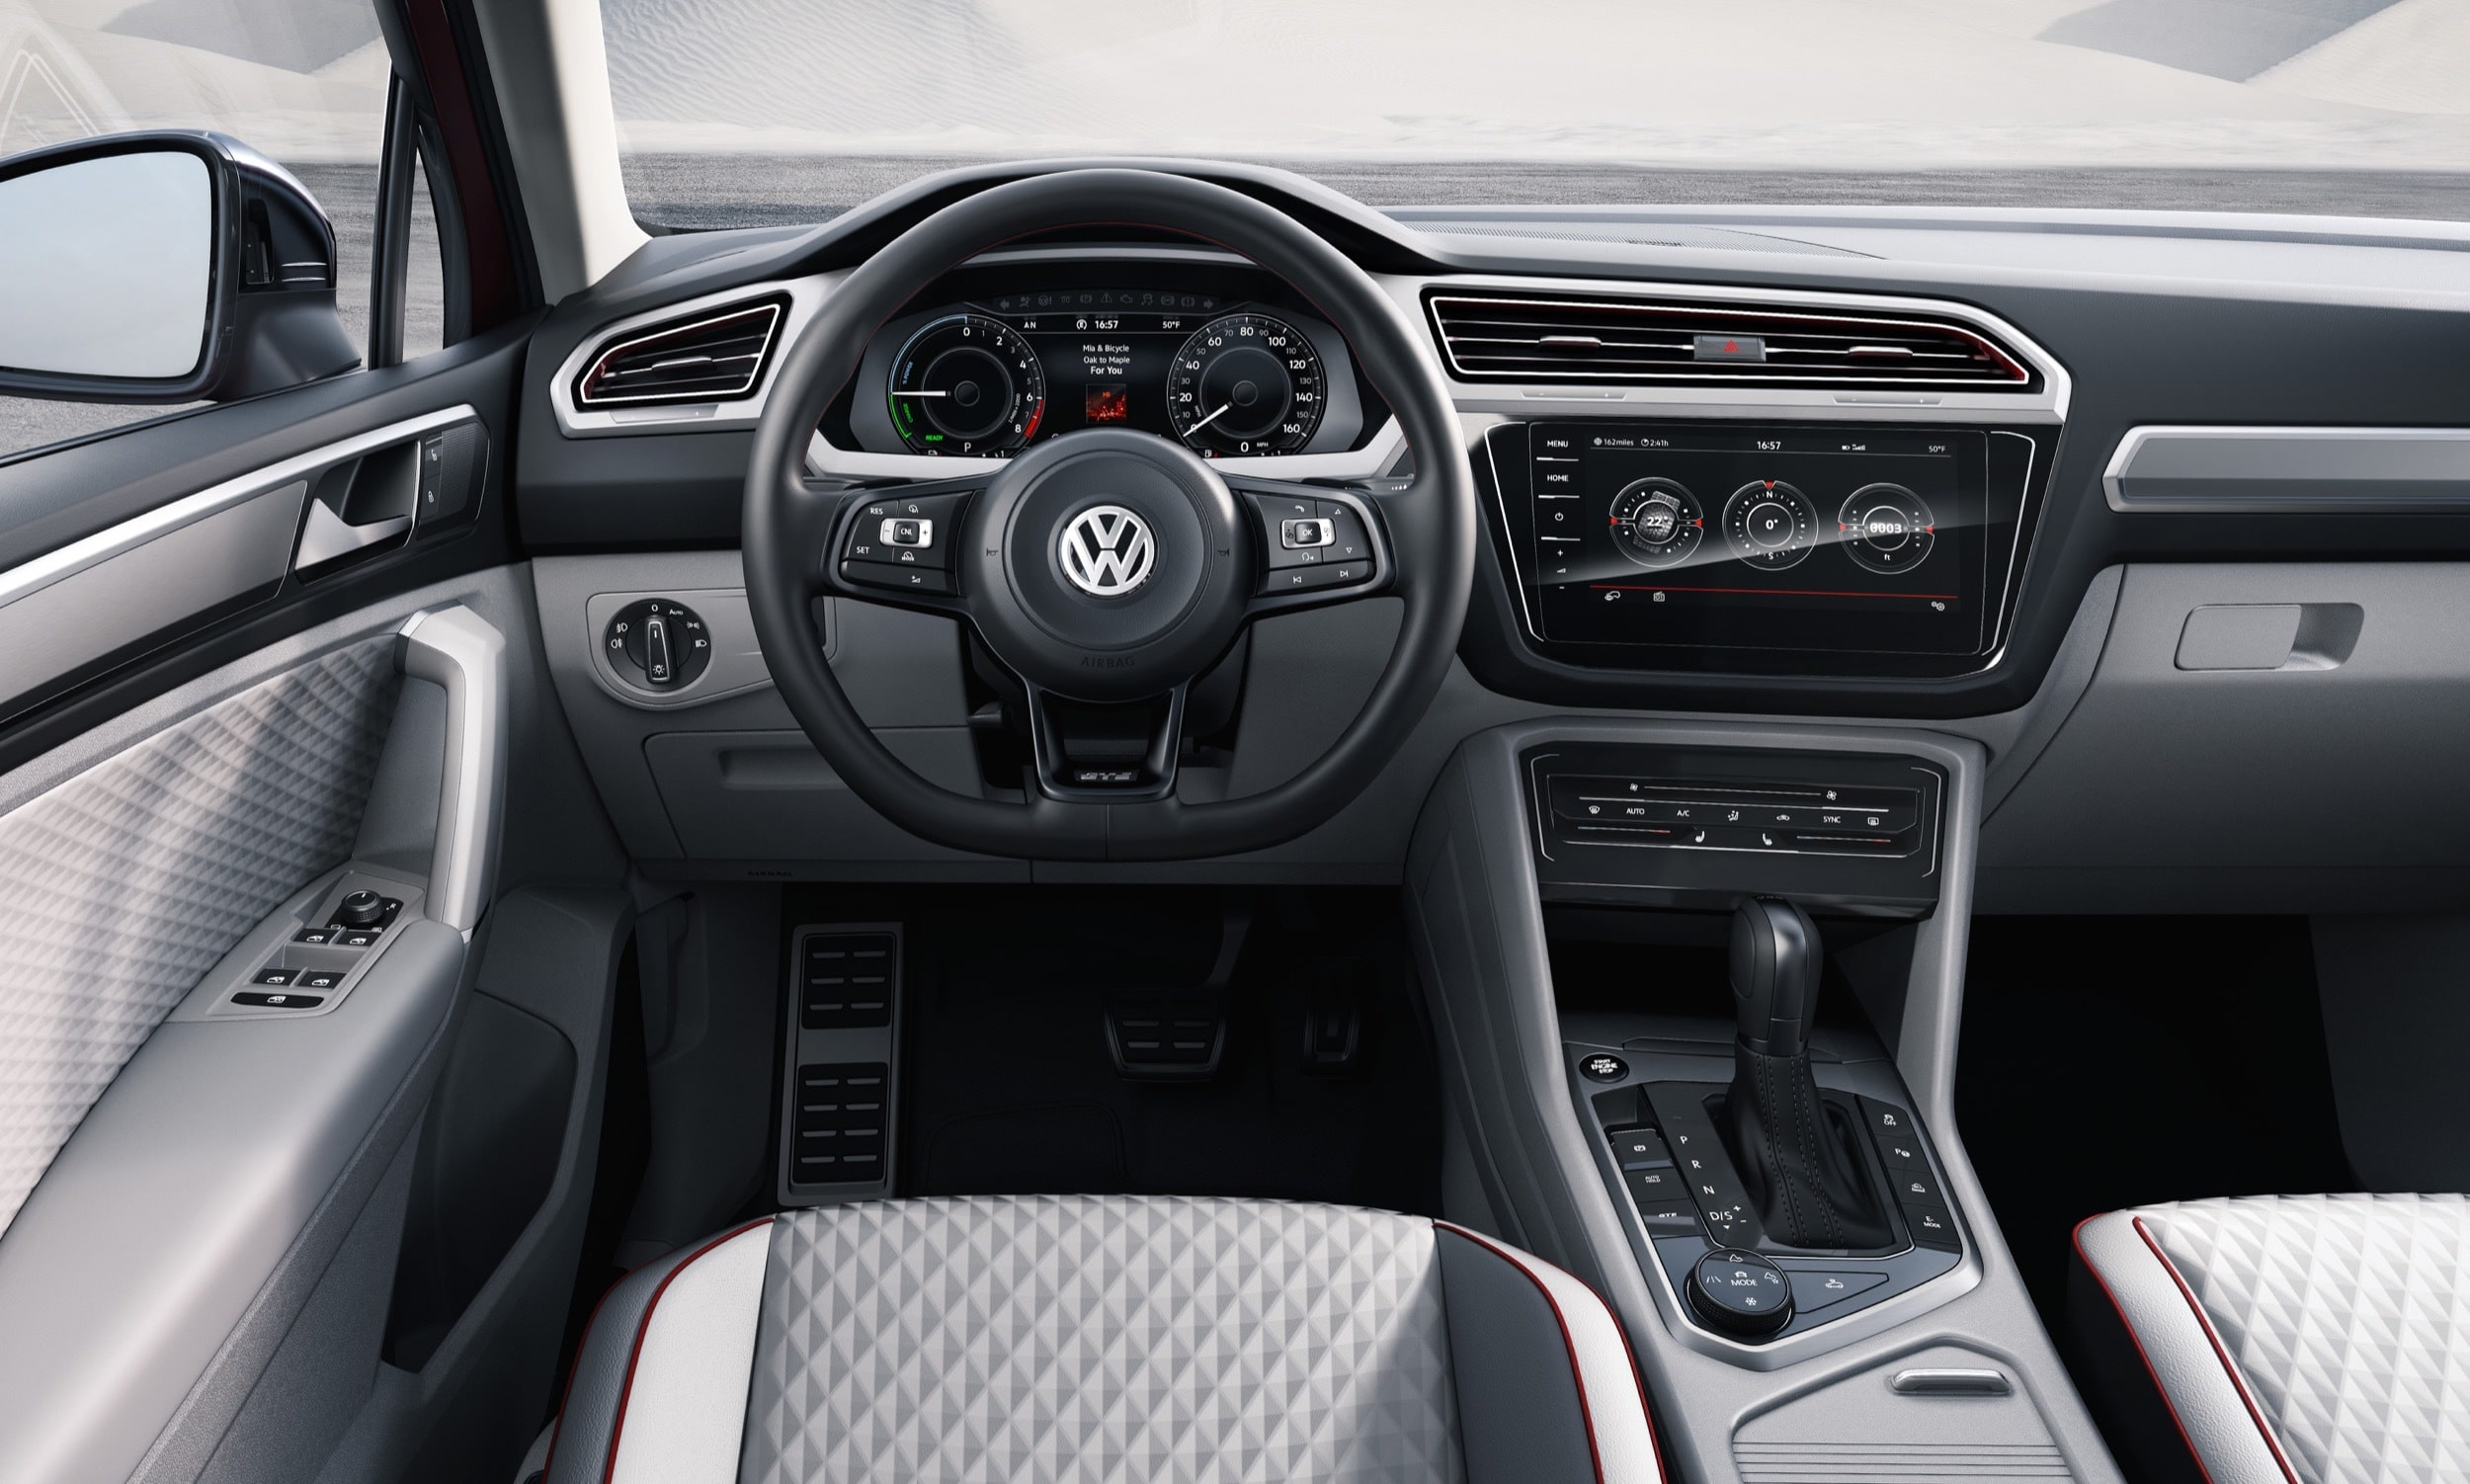 Volkswagen Tiguan 2 Full hd wallpapers